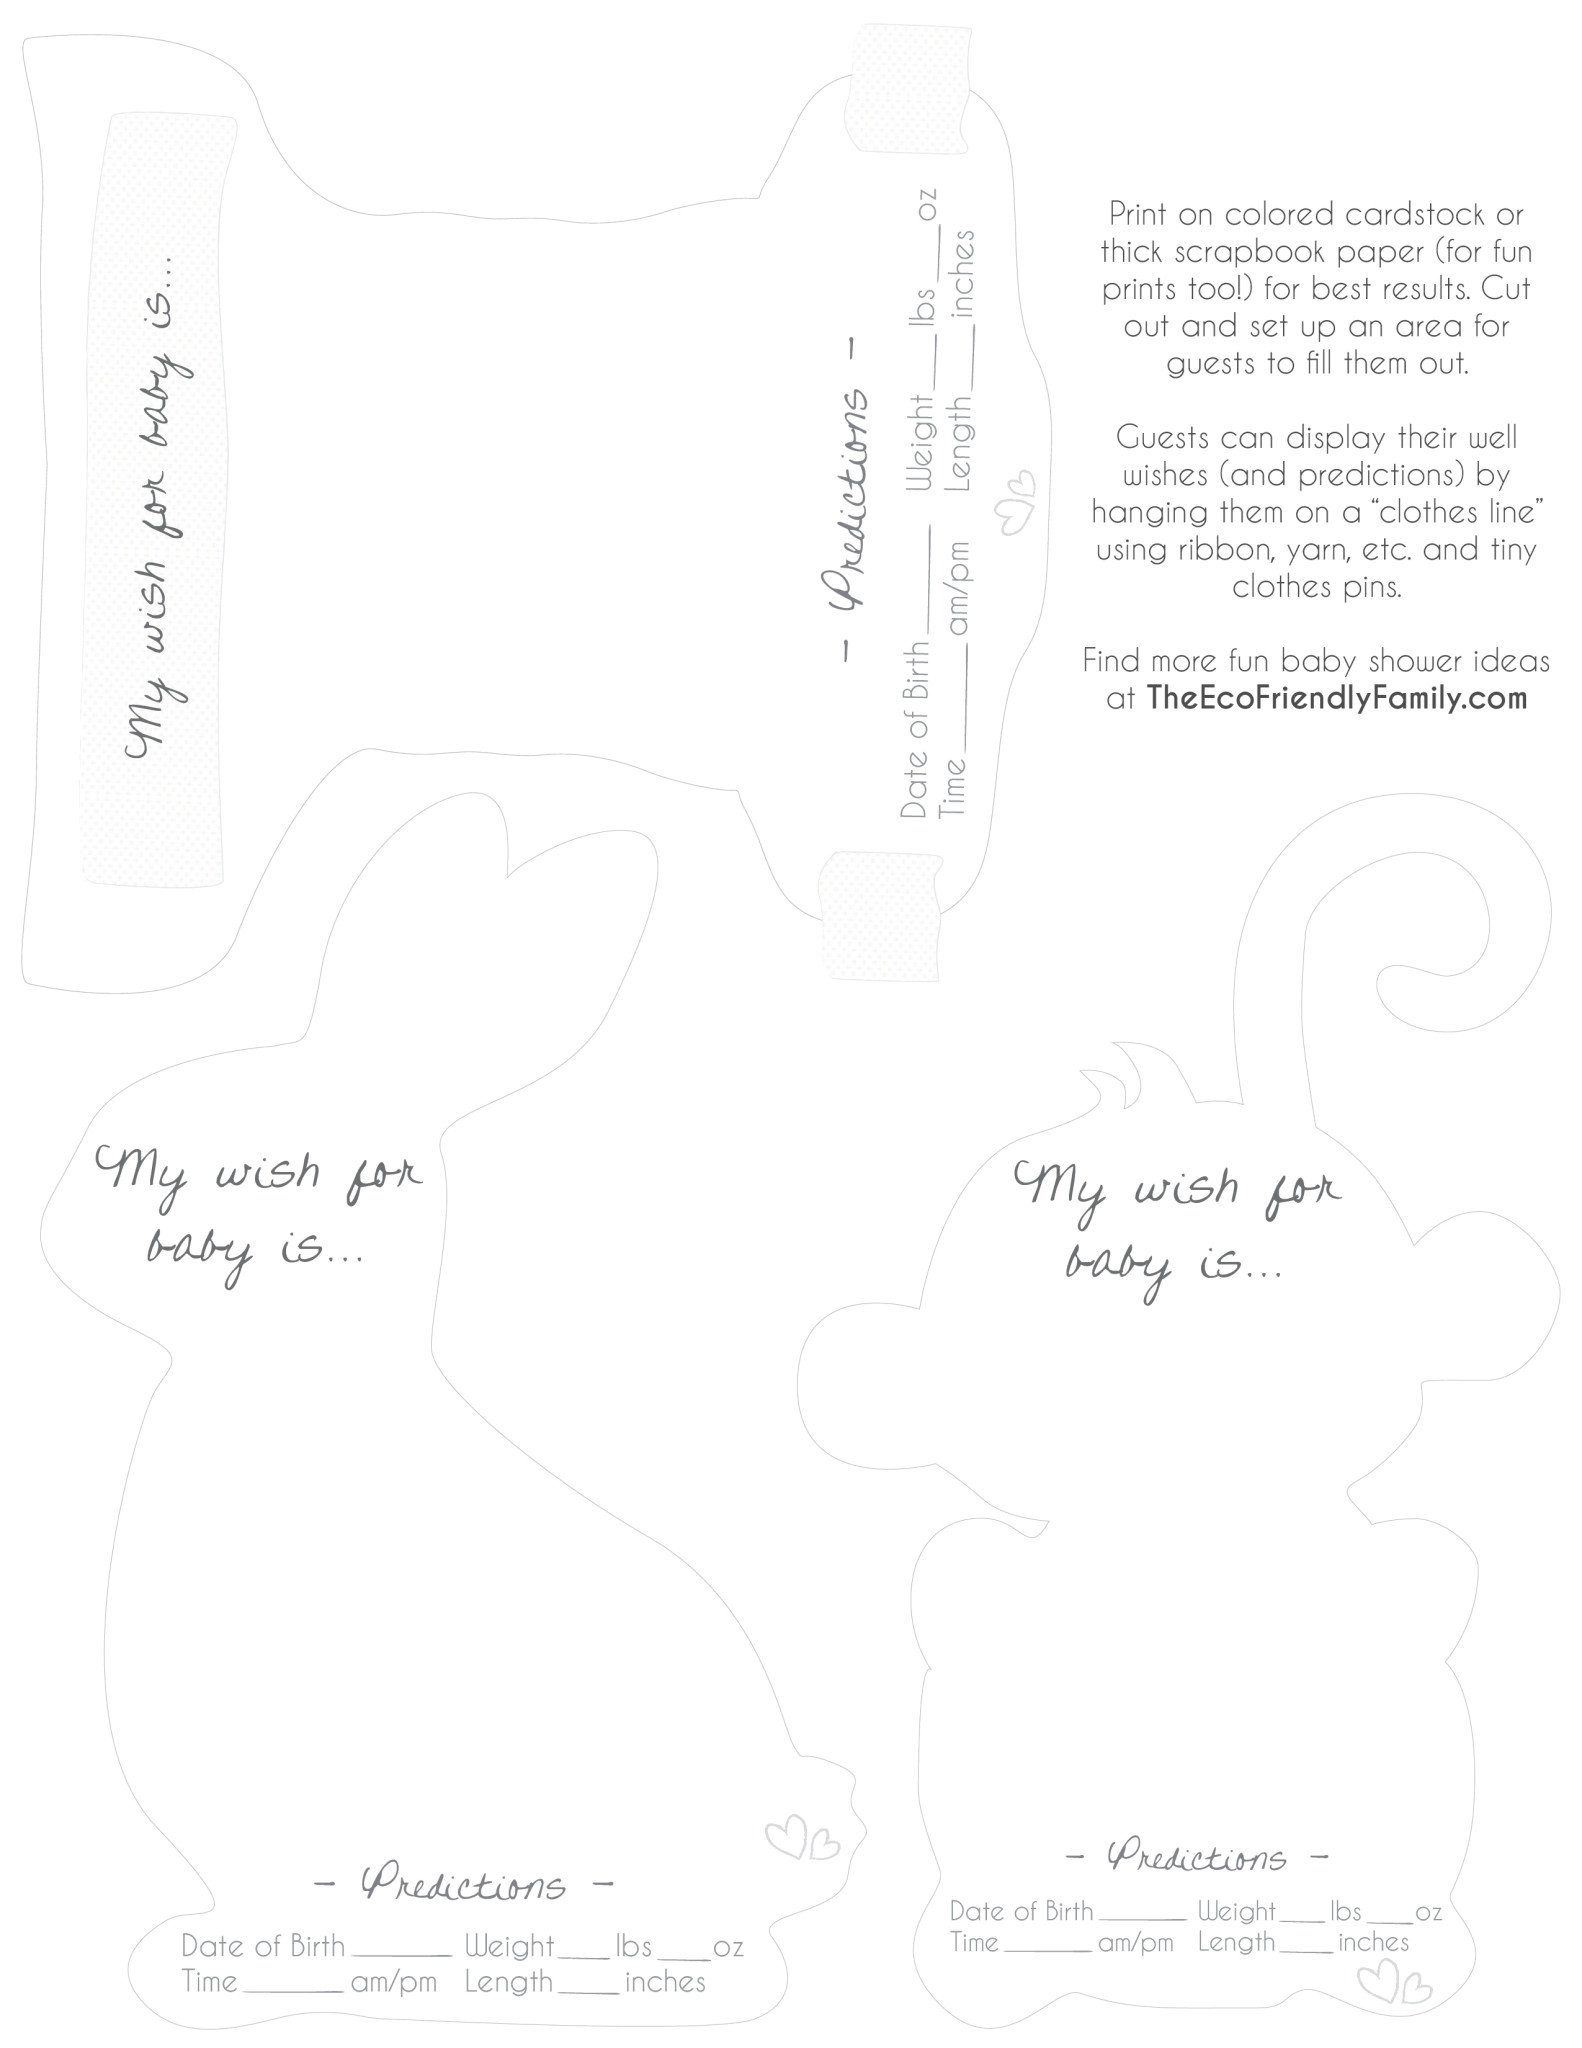 Well Wishes & Predictions For Baby { Free Printable }  The pertaining to Baby Prediction Template